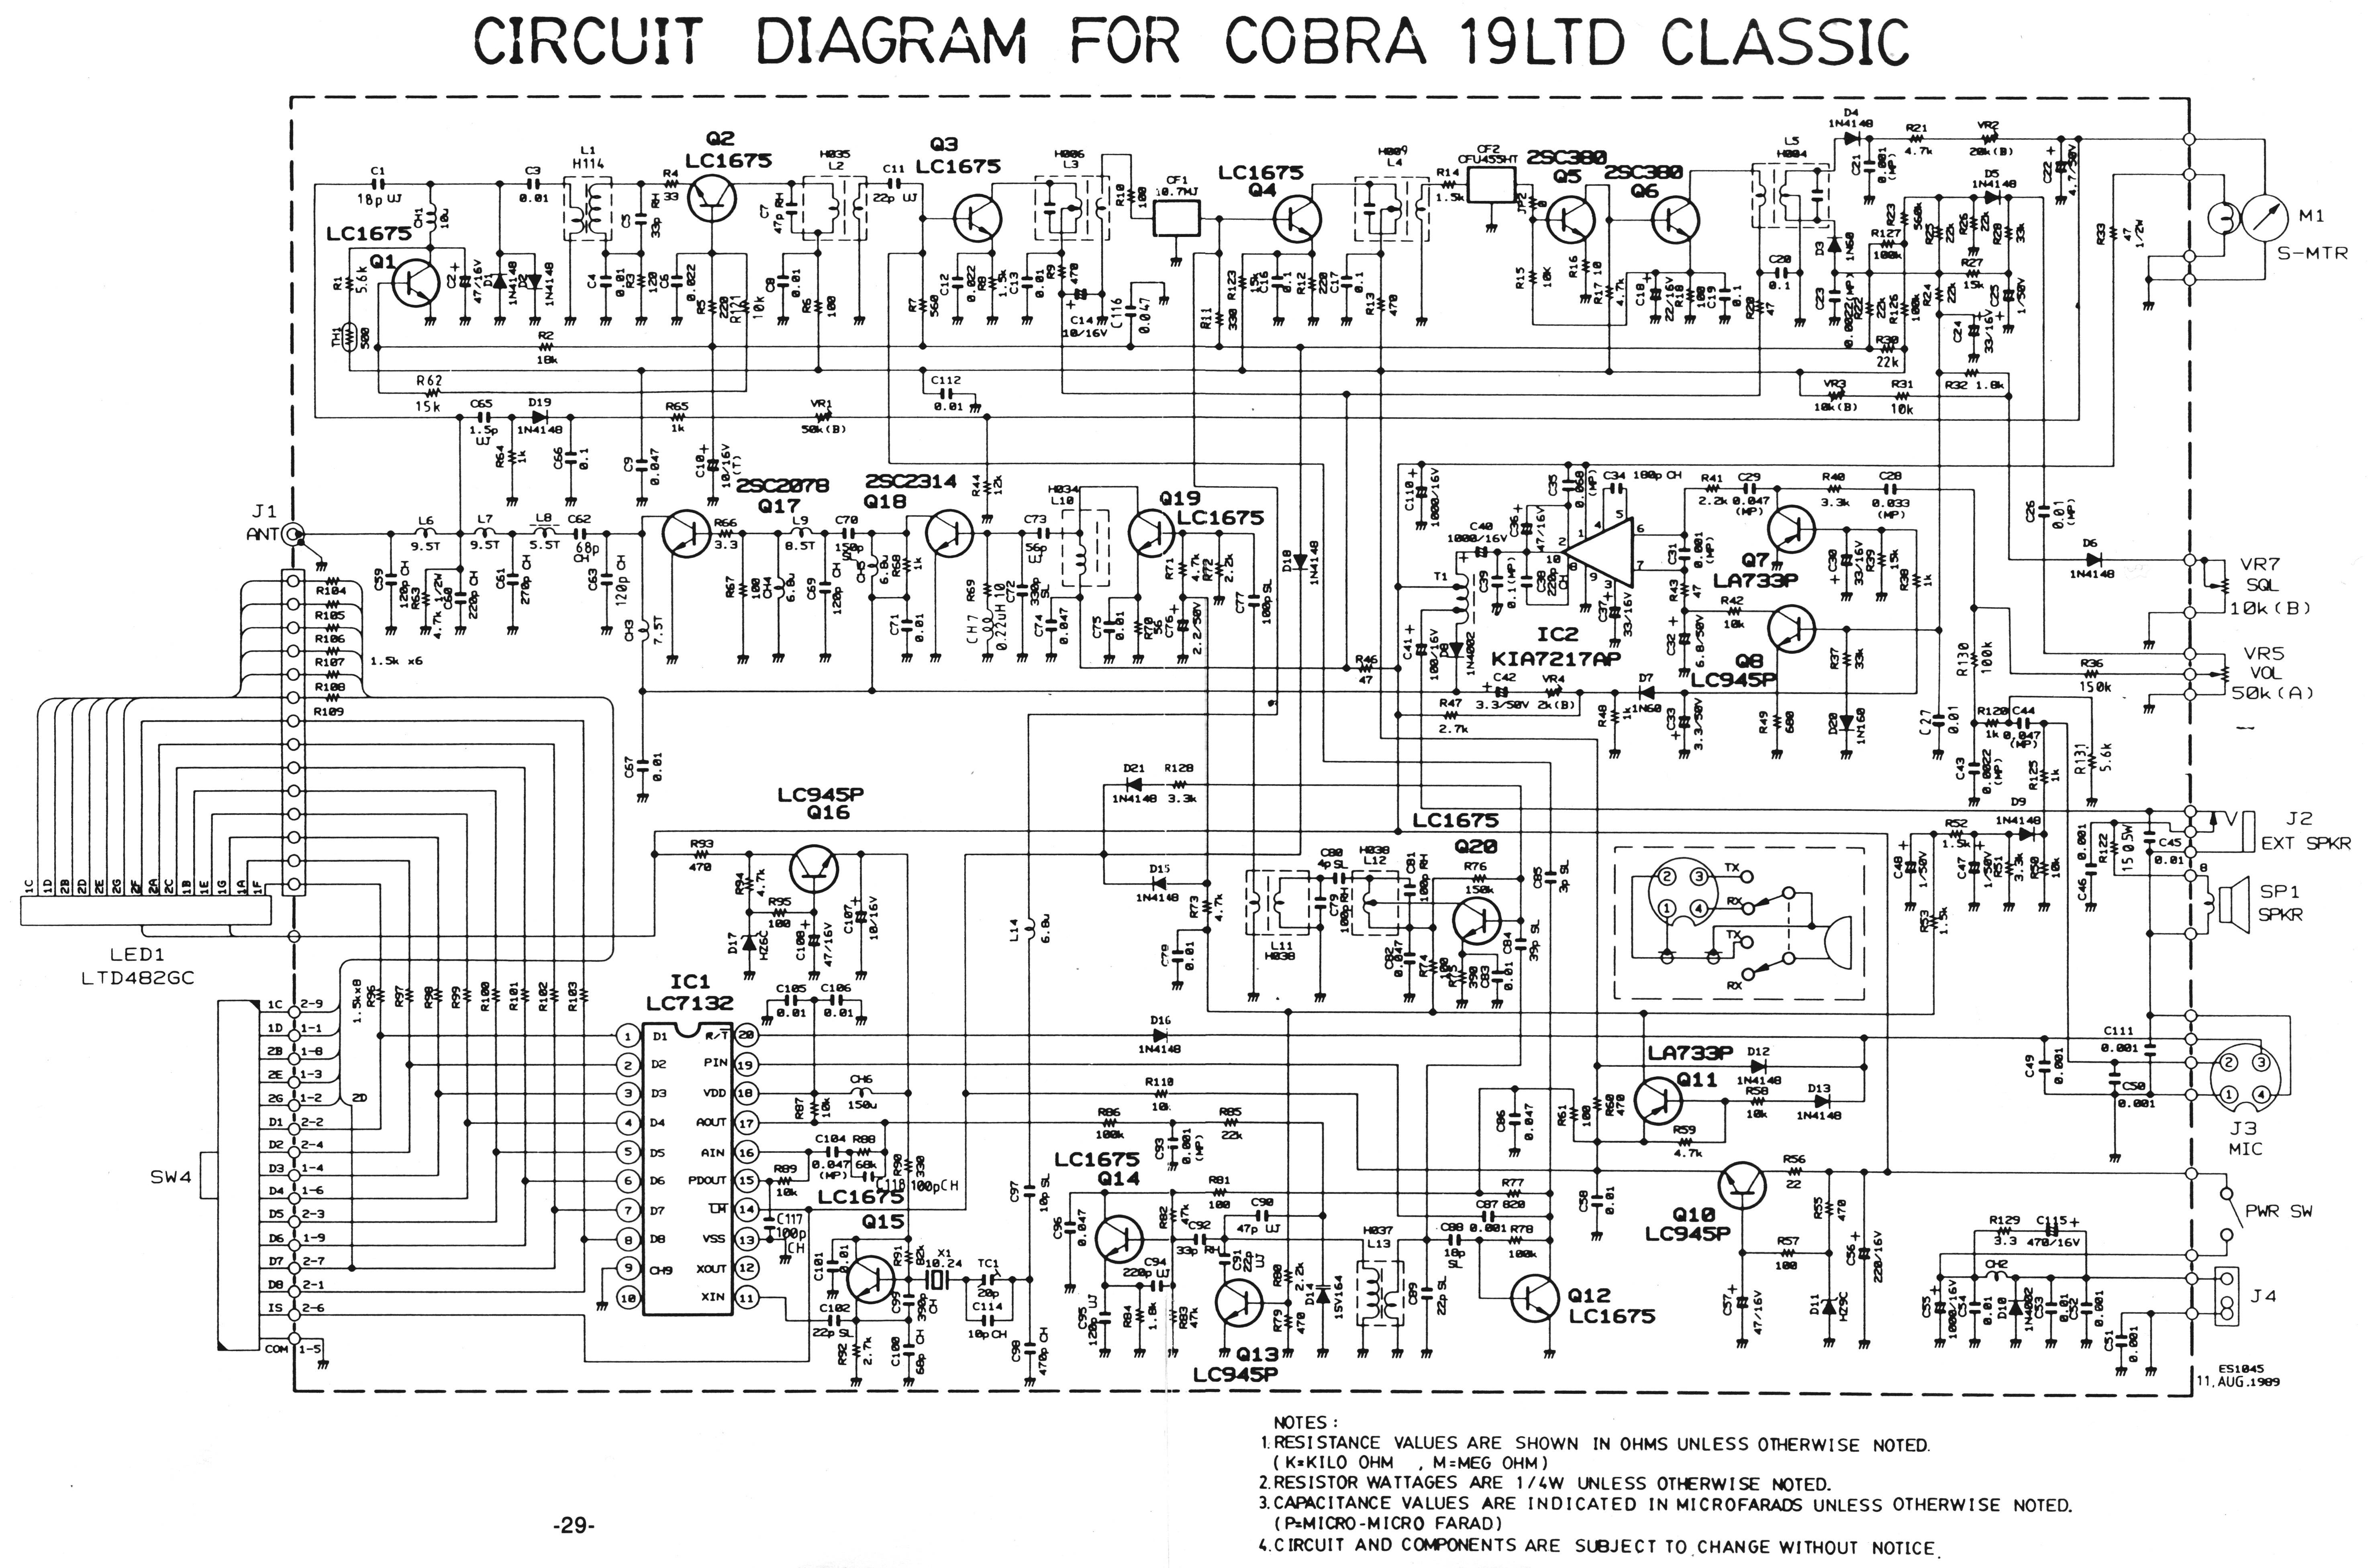 omc wiring schematic omc co wiring diagram diy wiring diagrams image Ignition Starter Switch Diagram omc co wiring diagram diy wiring diagrams omc co 3 0 wiring diagrams nilza net